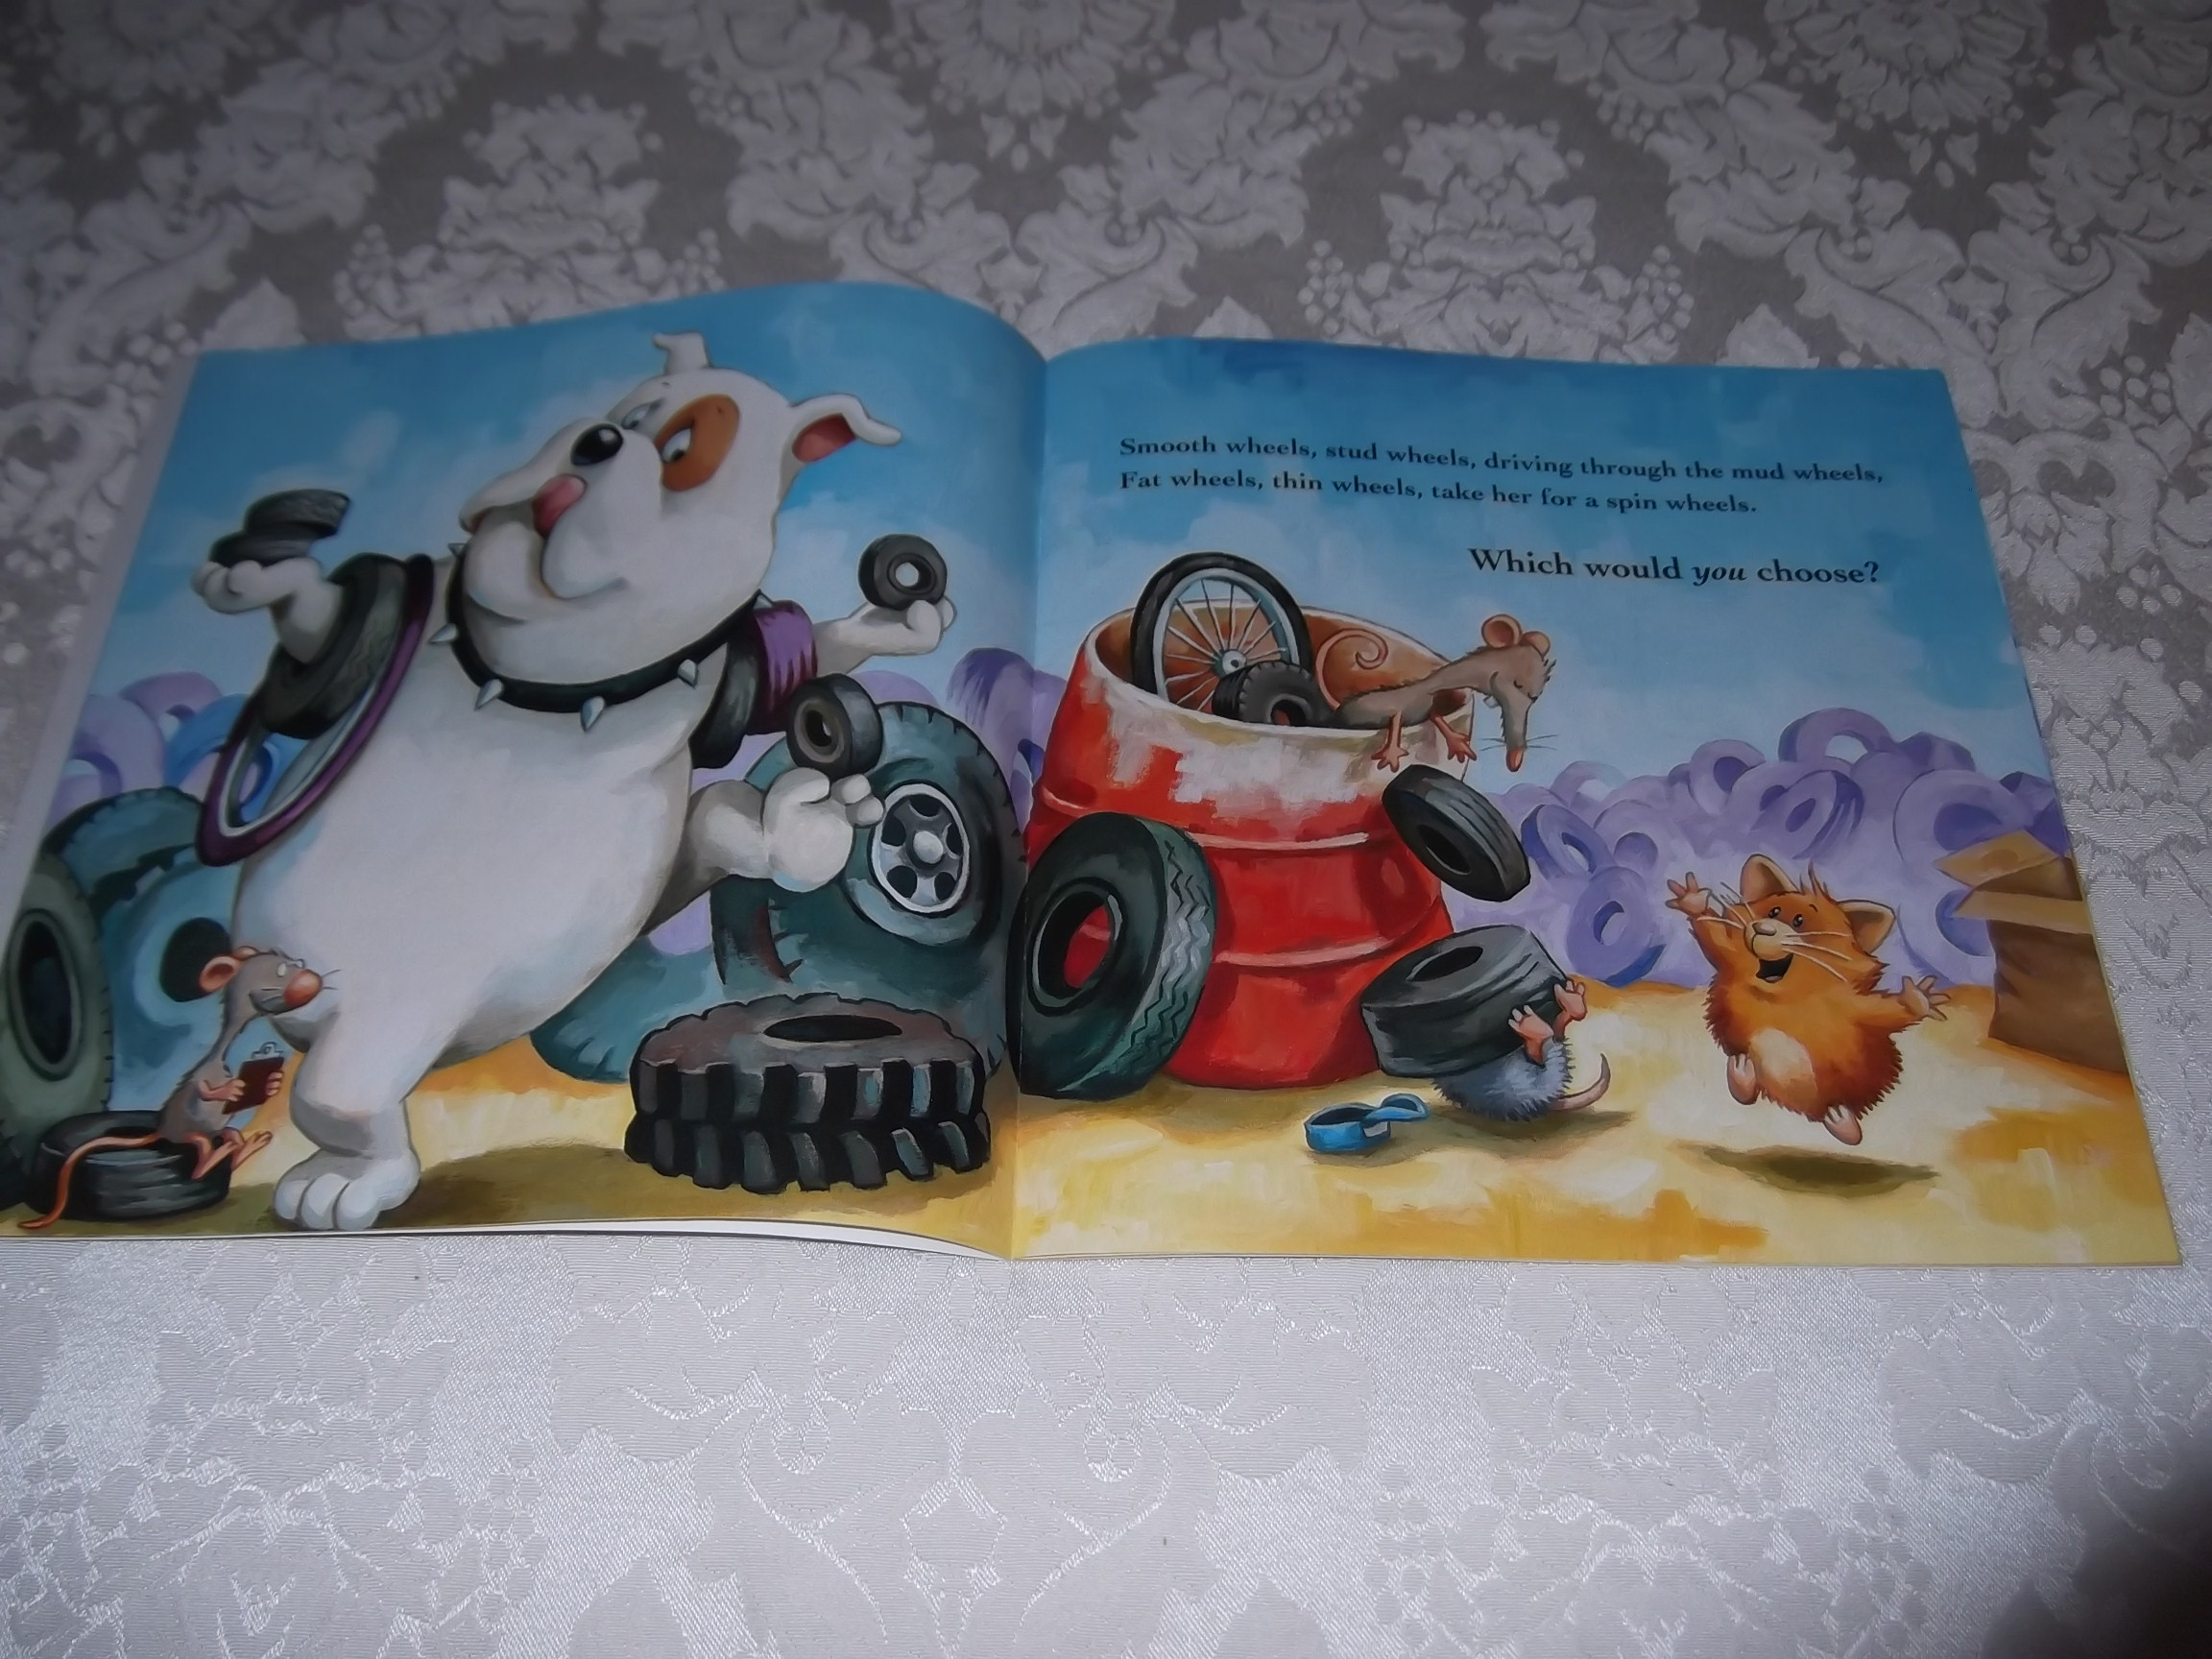 Image 1 of Hot Rod Hamster Cynthia Lord Very Good Softcover: http://bookcoverimgs.com/lots-of-question-marks/coachingforinspiration.com*wp-content*uploads*2012*05*ask-questions.jpg/coachingforinspiration.com*presentationstructure*